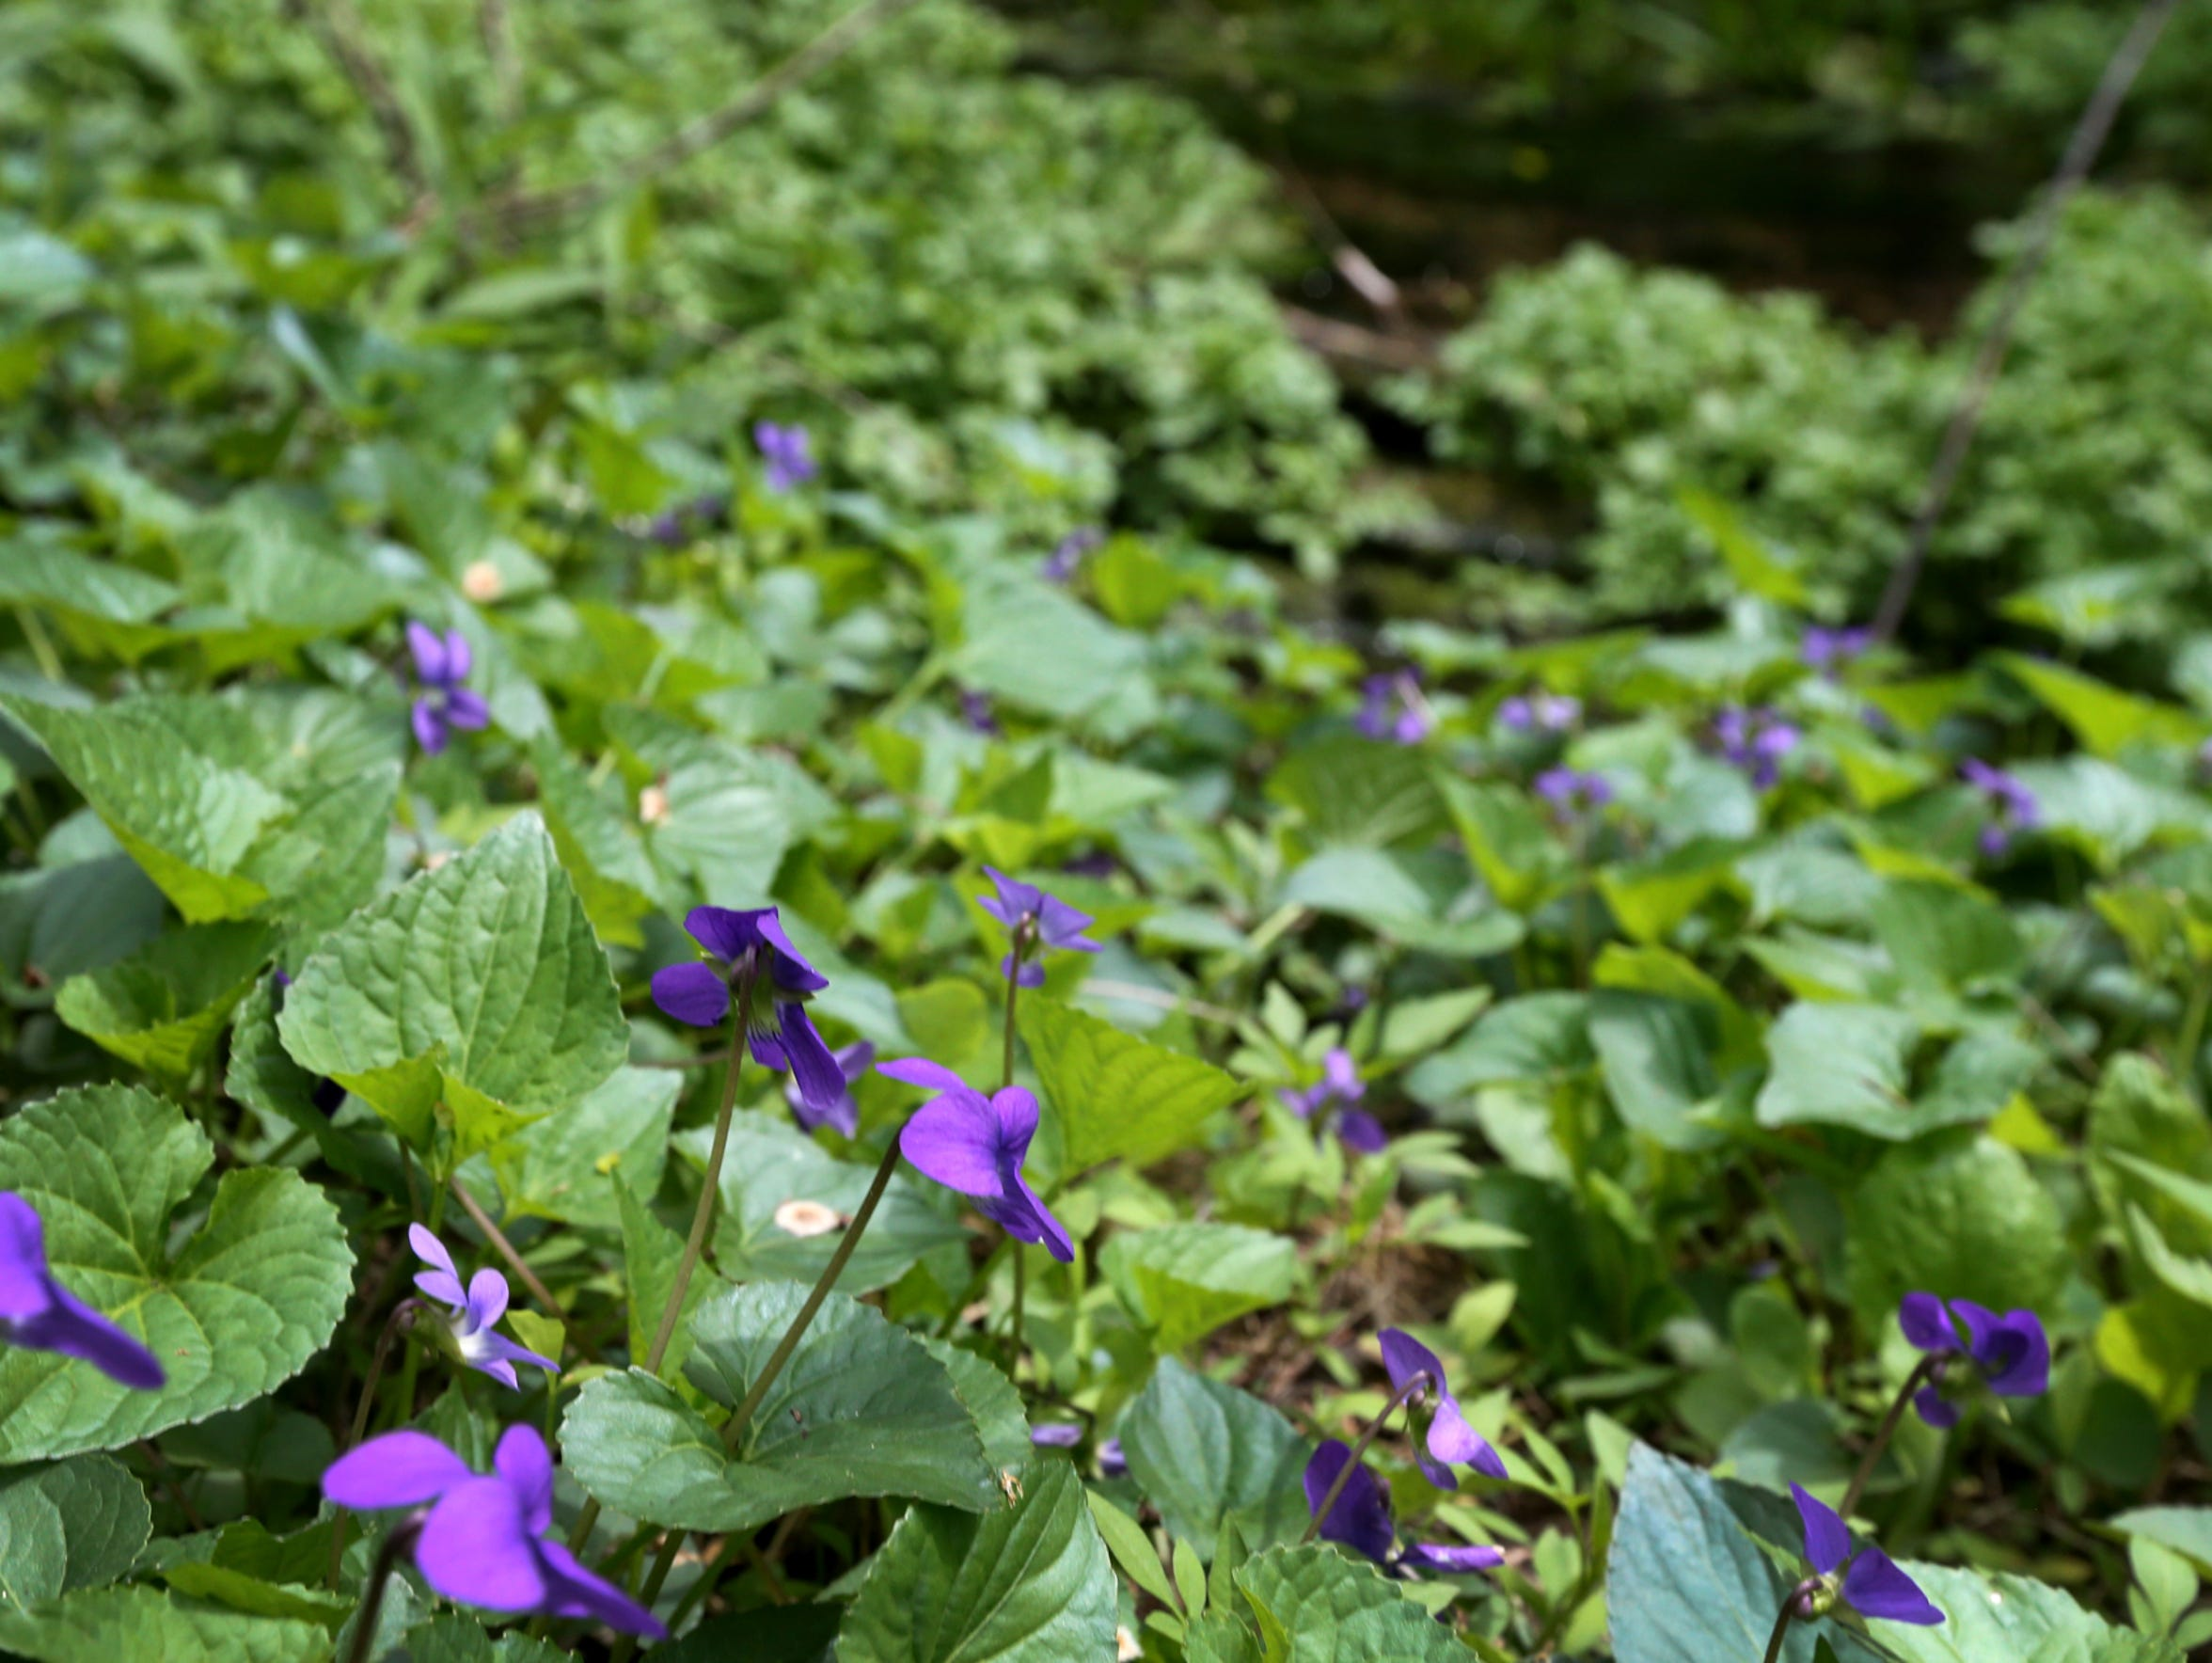 Wild violets in bloom can be seen during a walk around